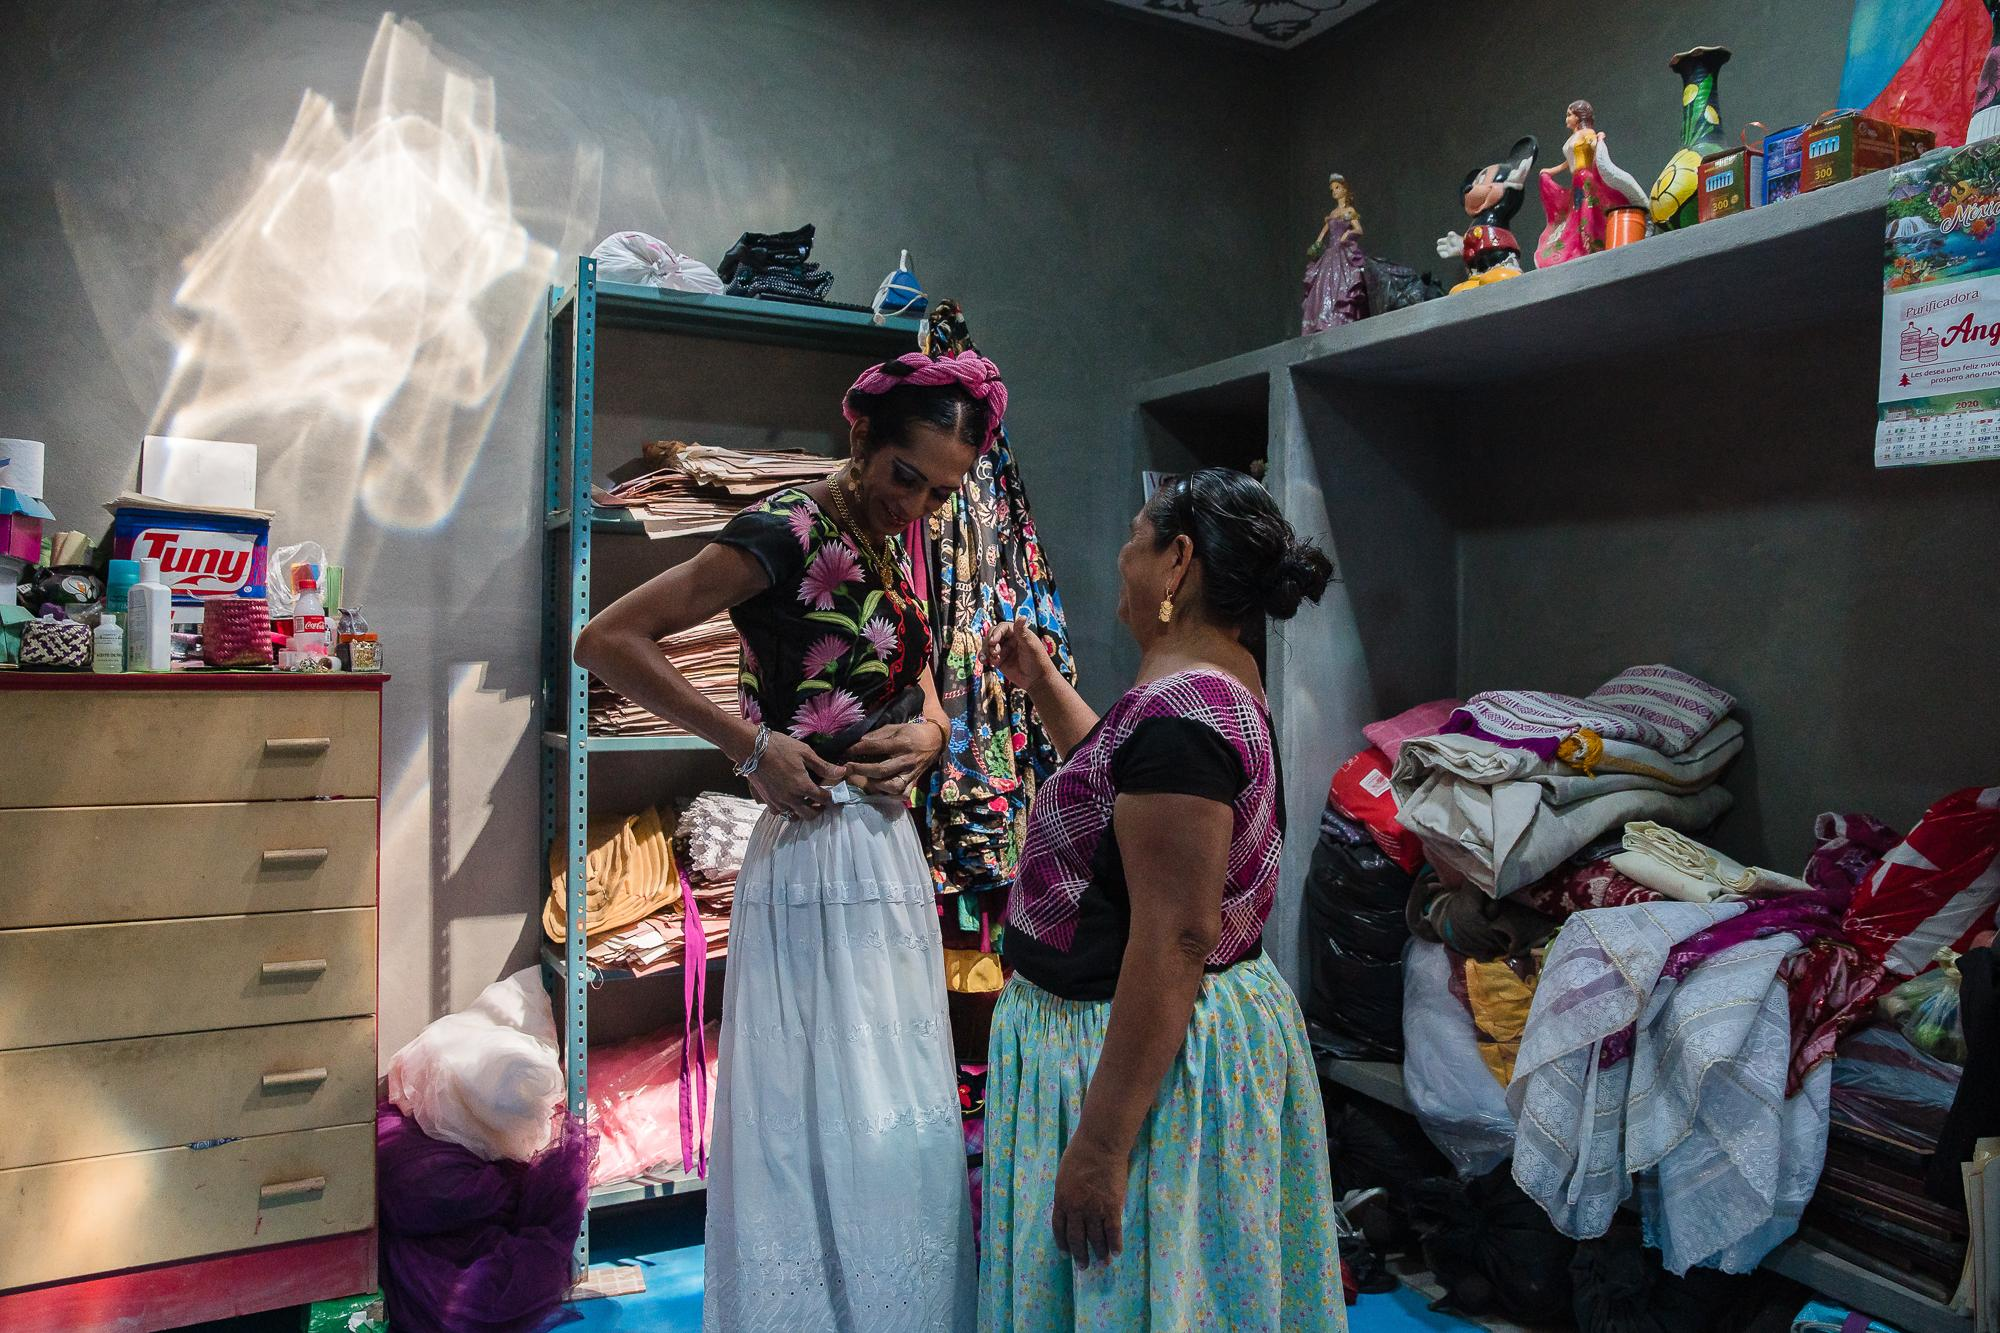 Estrella's mom helps her get ready.  Estrella was born a man but prefers to be identified as a woman.